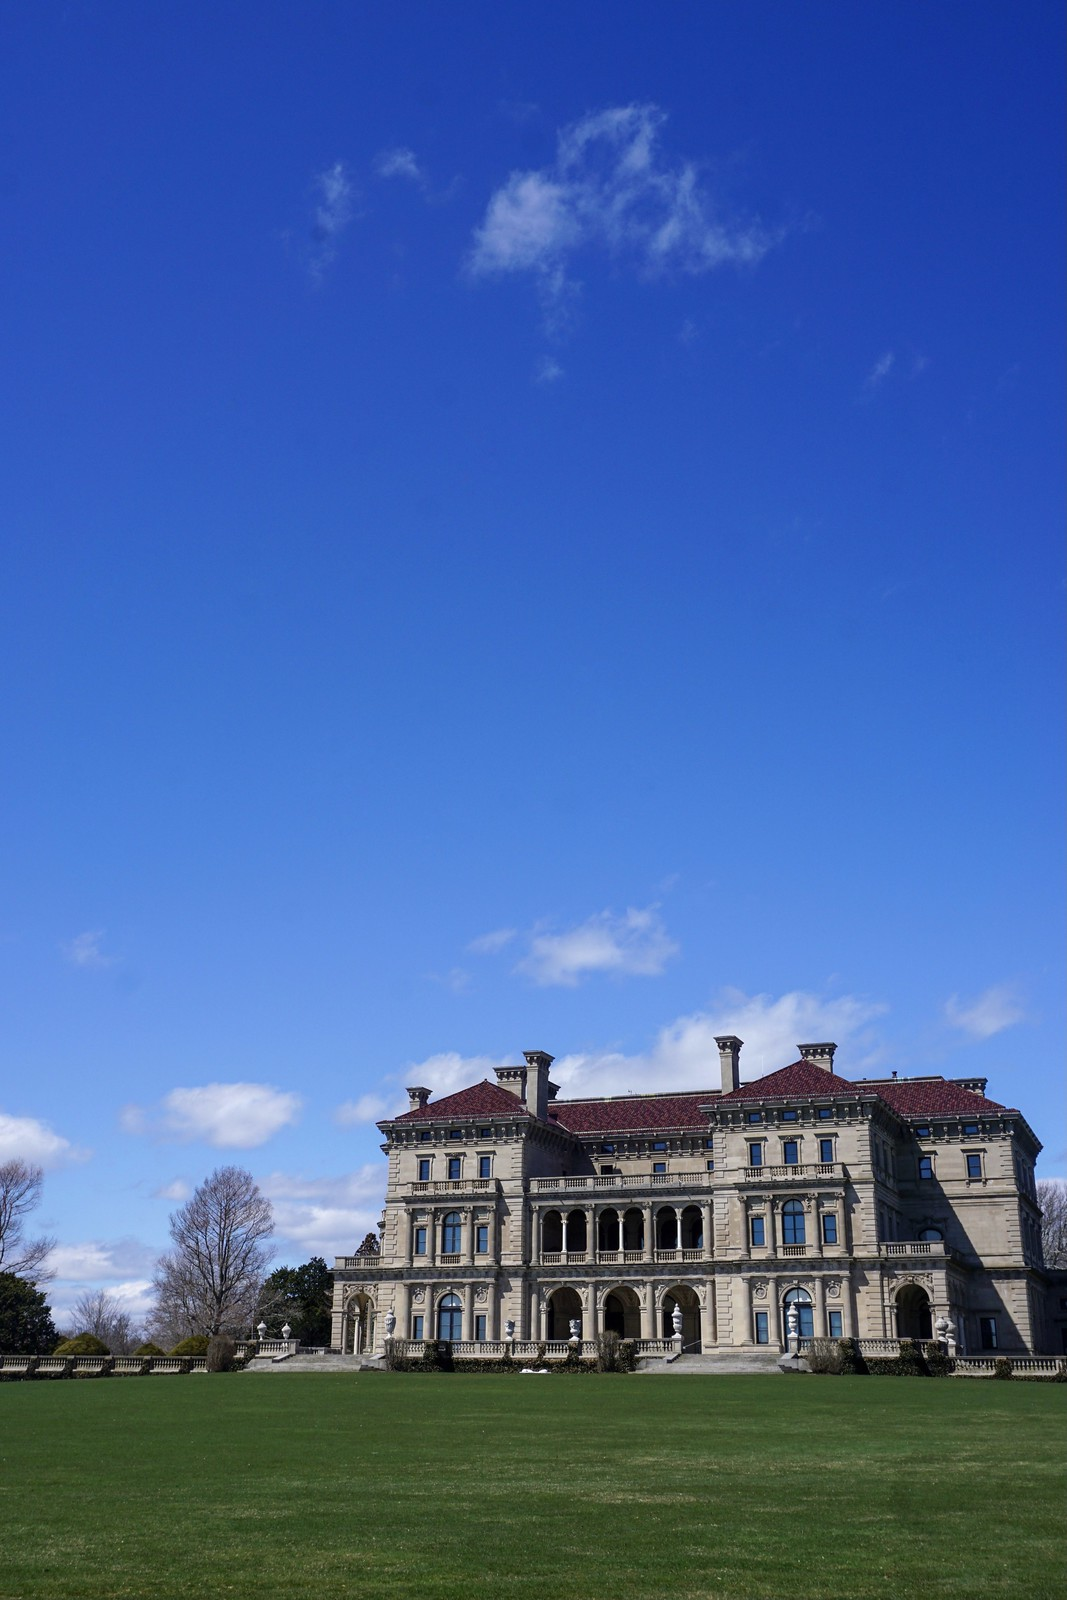 The Breakers Vanderbilt Mansion view from the Cliff Walk | 48 Hours in Newport Itinerary | A First Timer's Guide to 2 Days in Newport Rhode Island | What to do in Newport | Newport Travel Guide | Best Things to do in Newport | Best Places to Visit in Newport